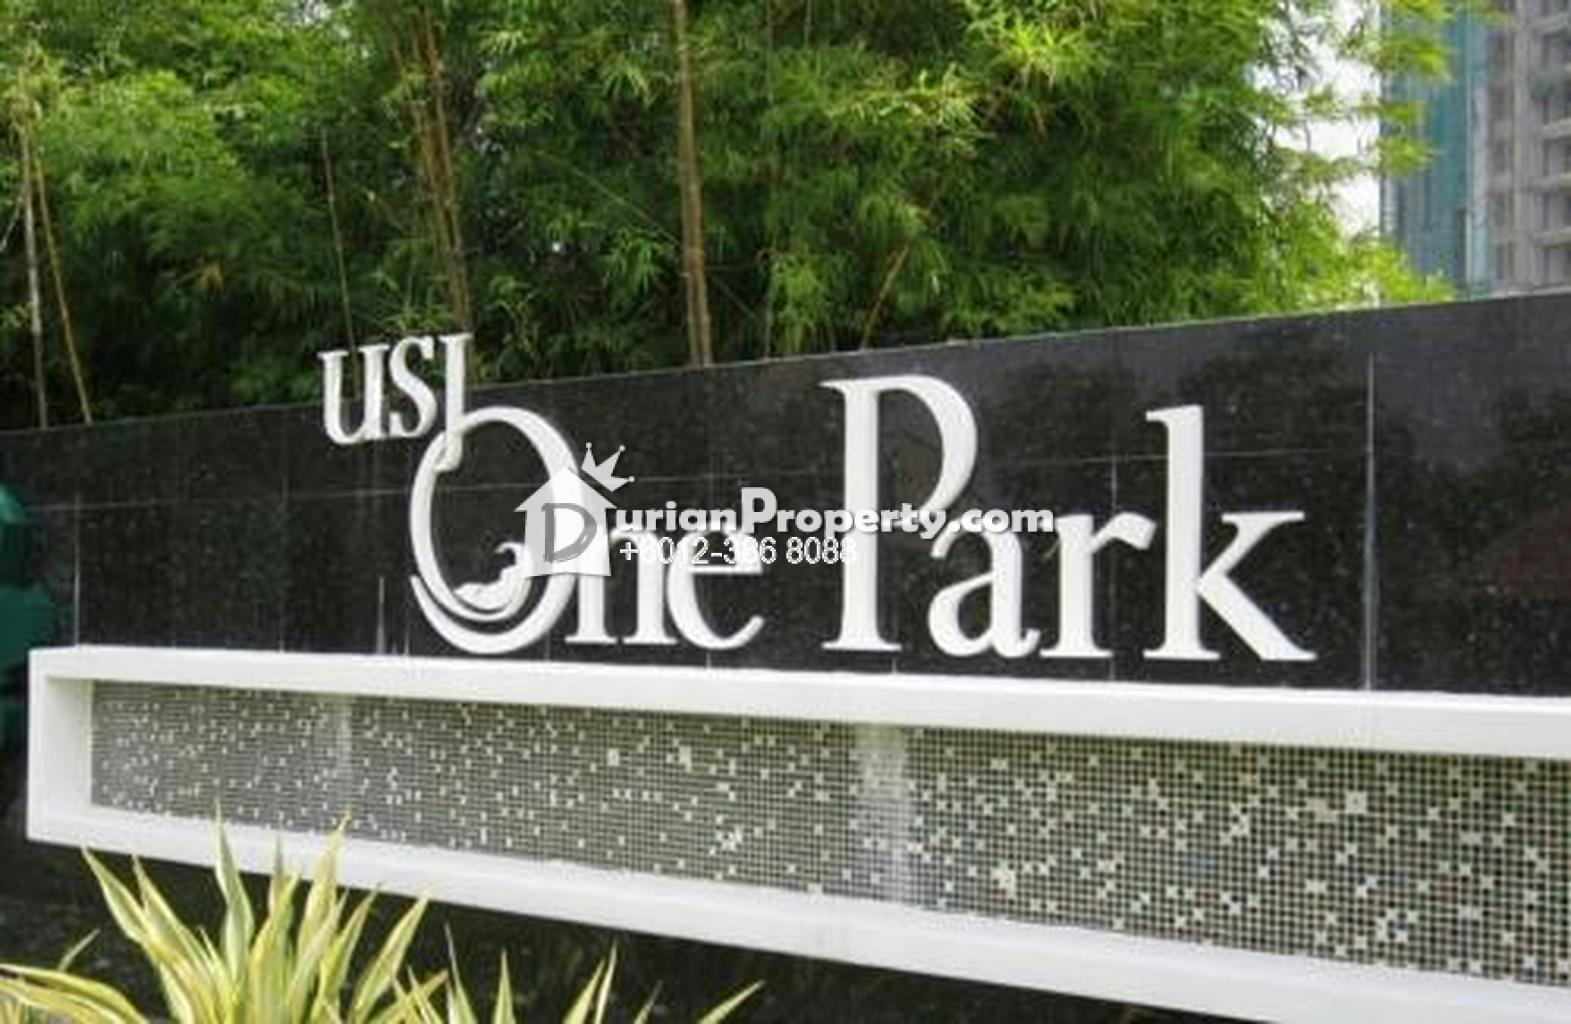 Condo For Sale At USJ One Park USJ For RM  By Caseylow - Usj 1 location map